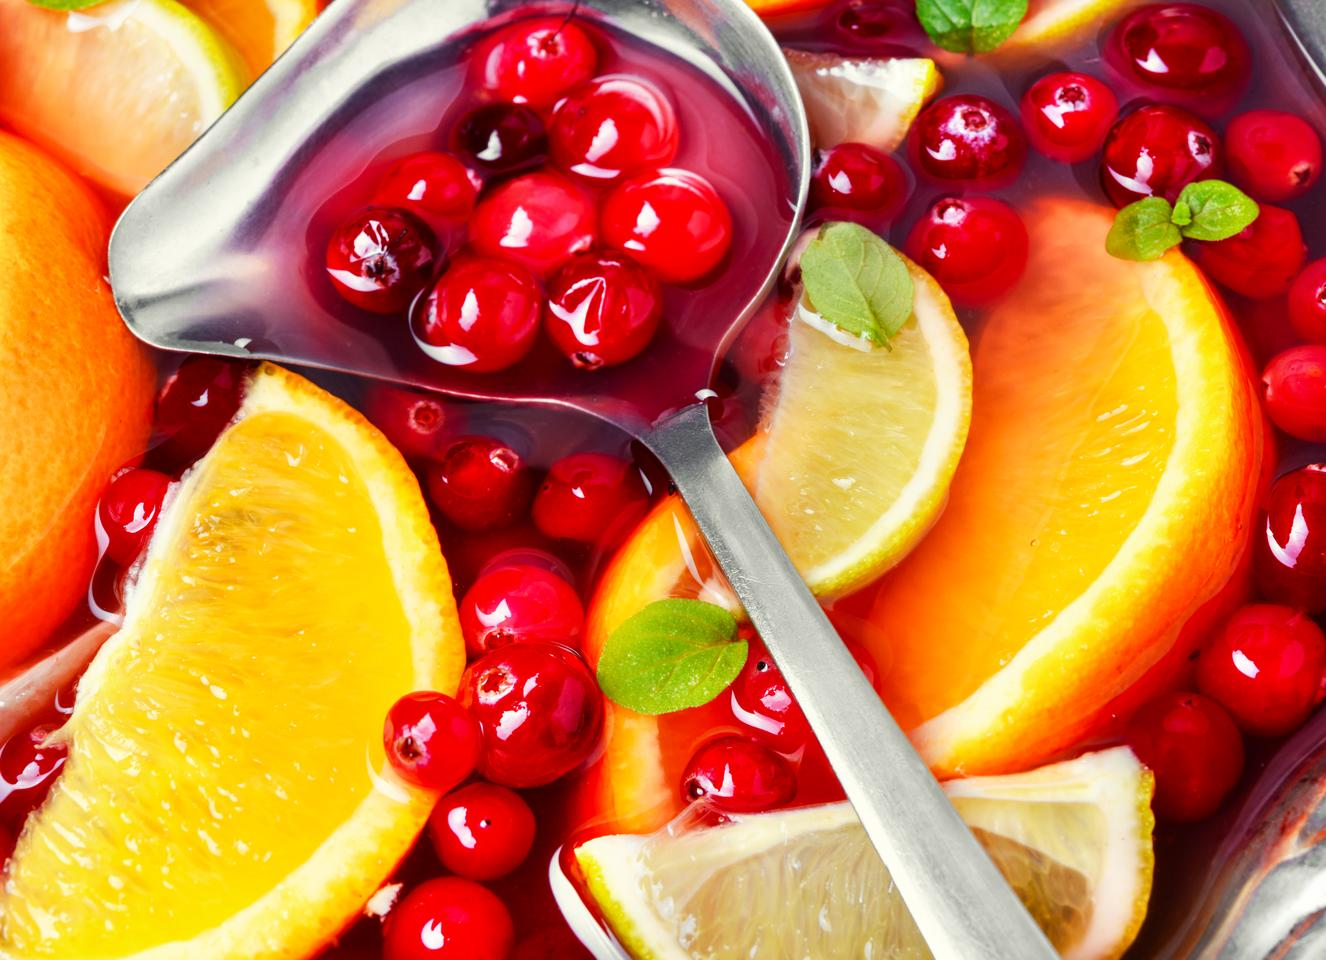 Cranberries and citrus go well together – particularly when it comes to neutralizing food-borne viruses